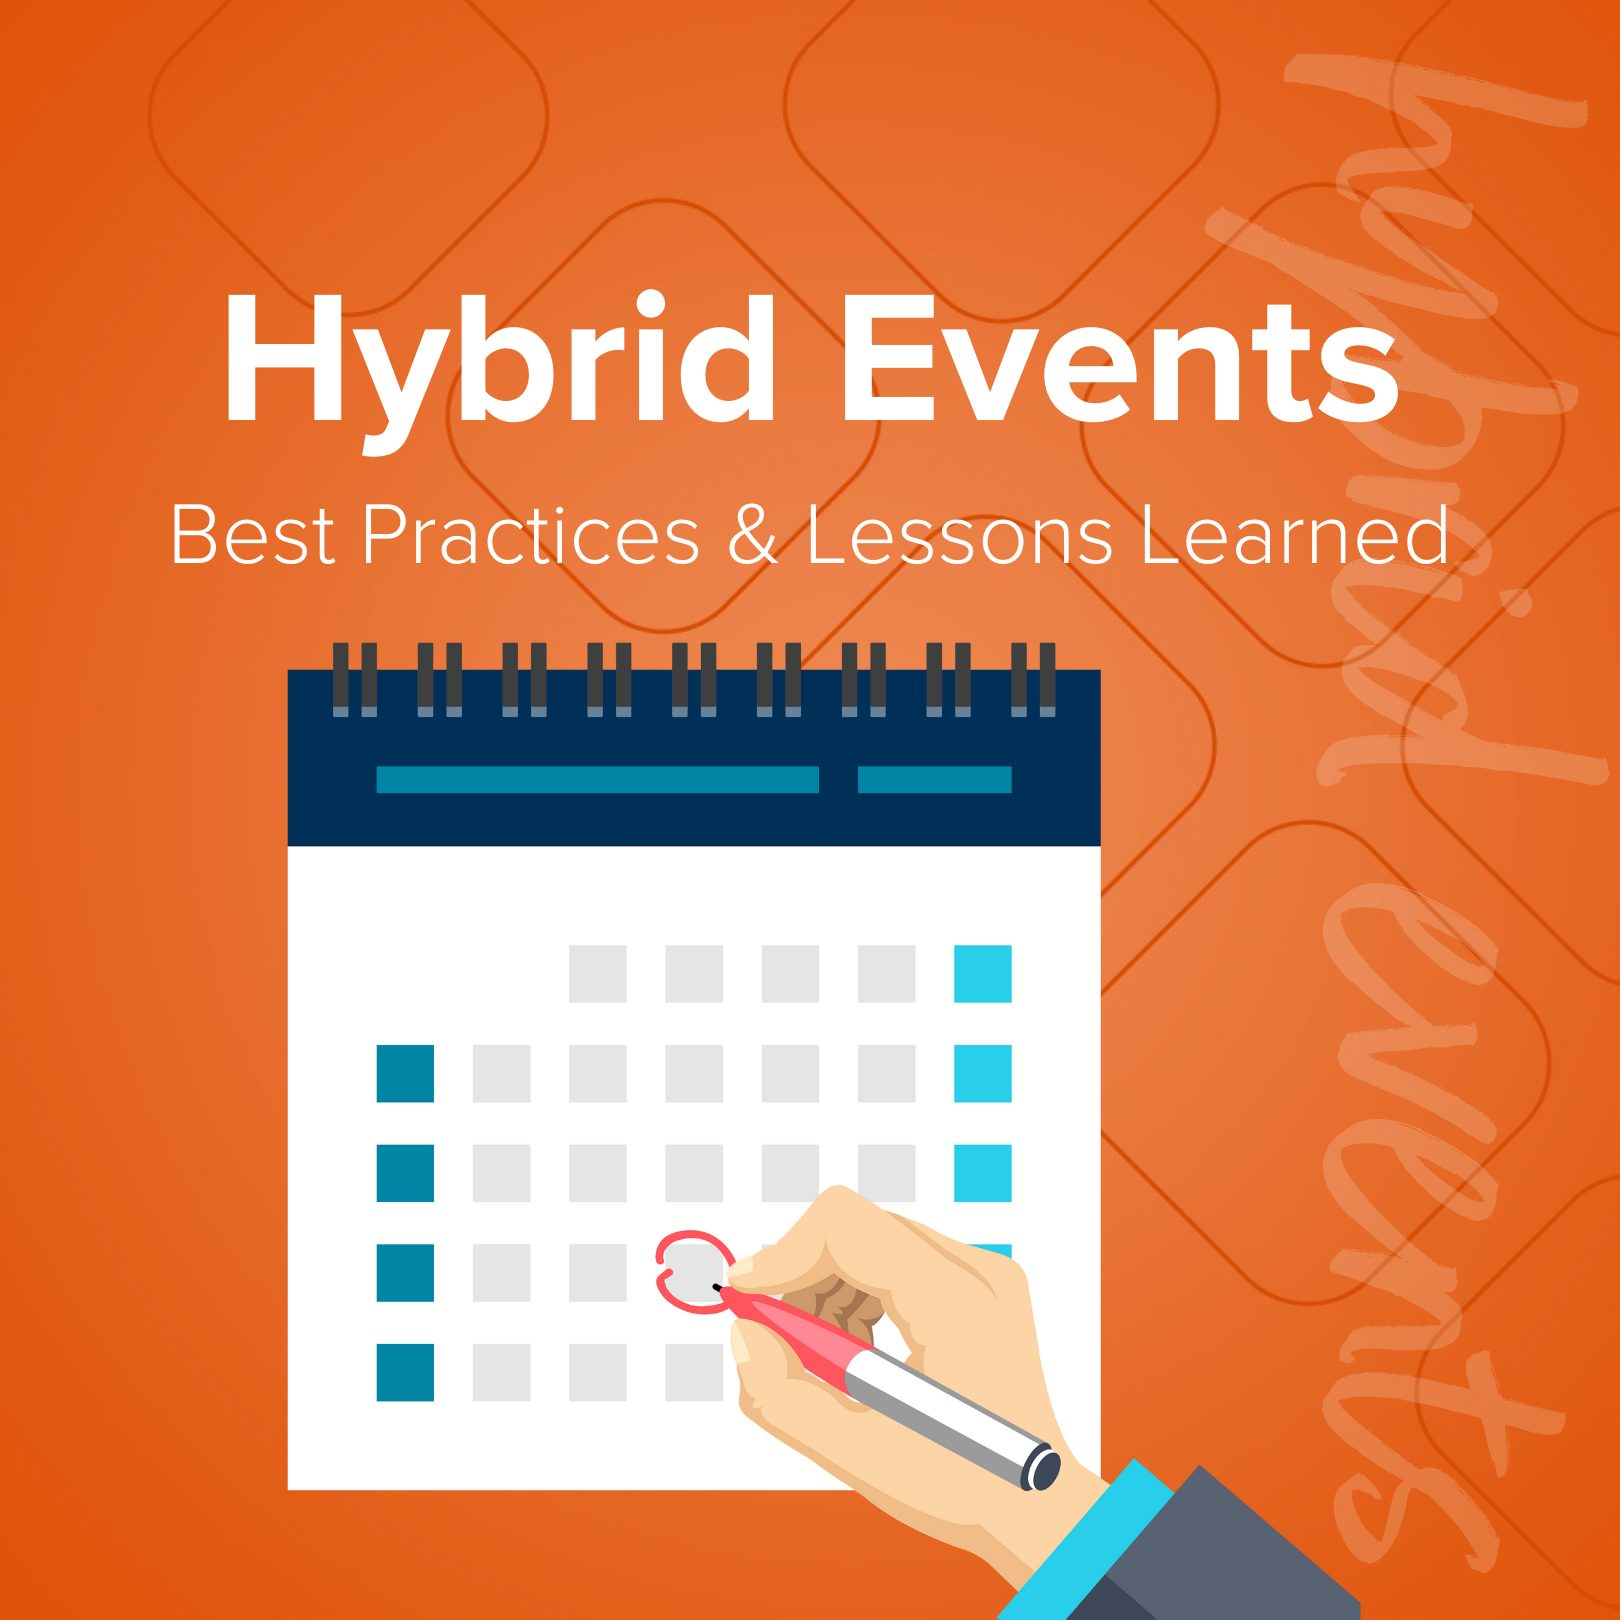 hybrid events best practices